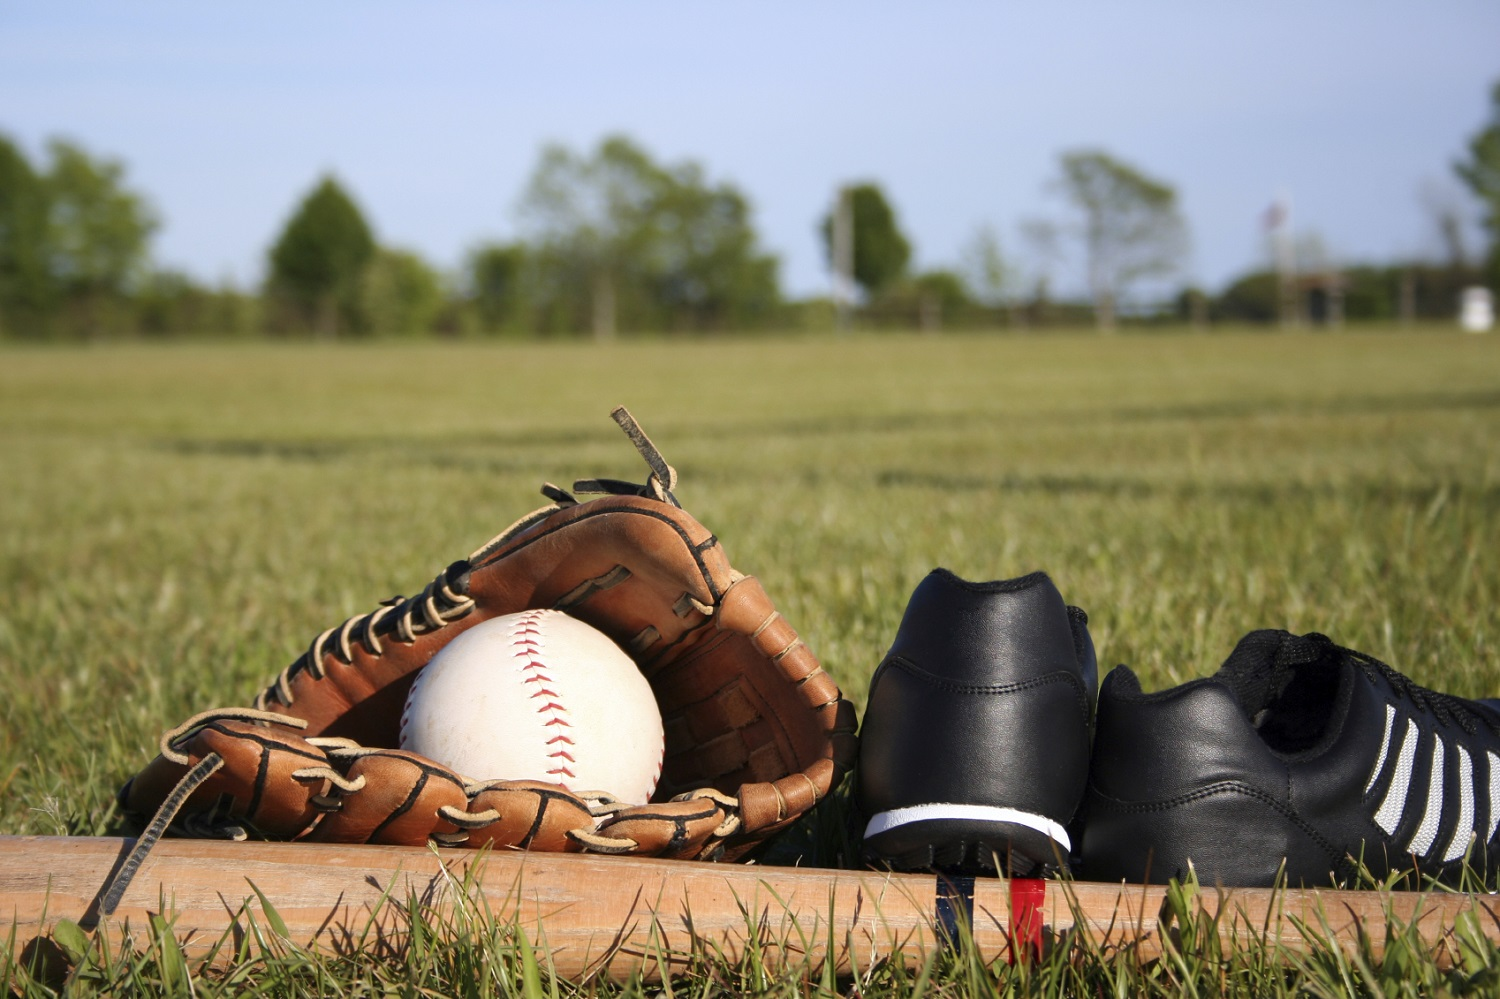 15 Best Baseball Cleats Reviewed & Rated in 2018 | NicerShoes